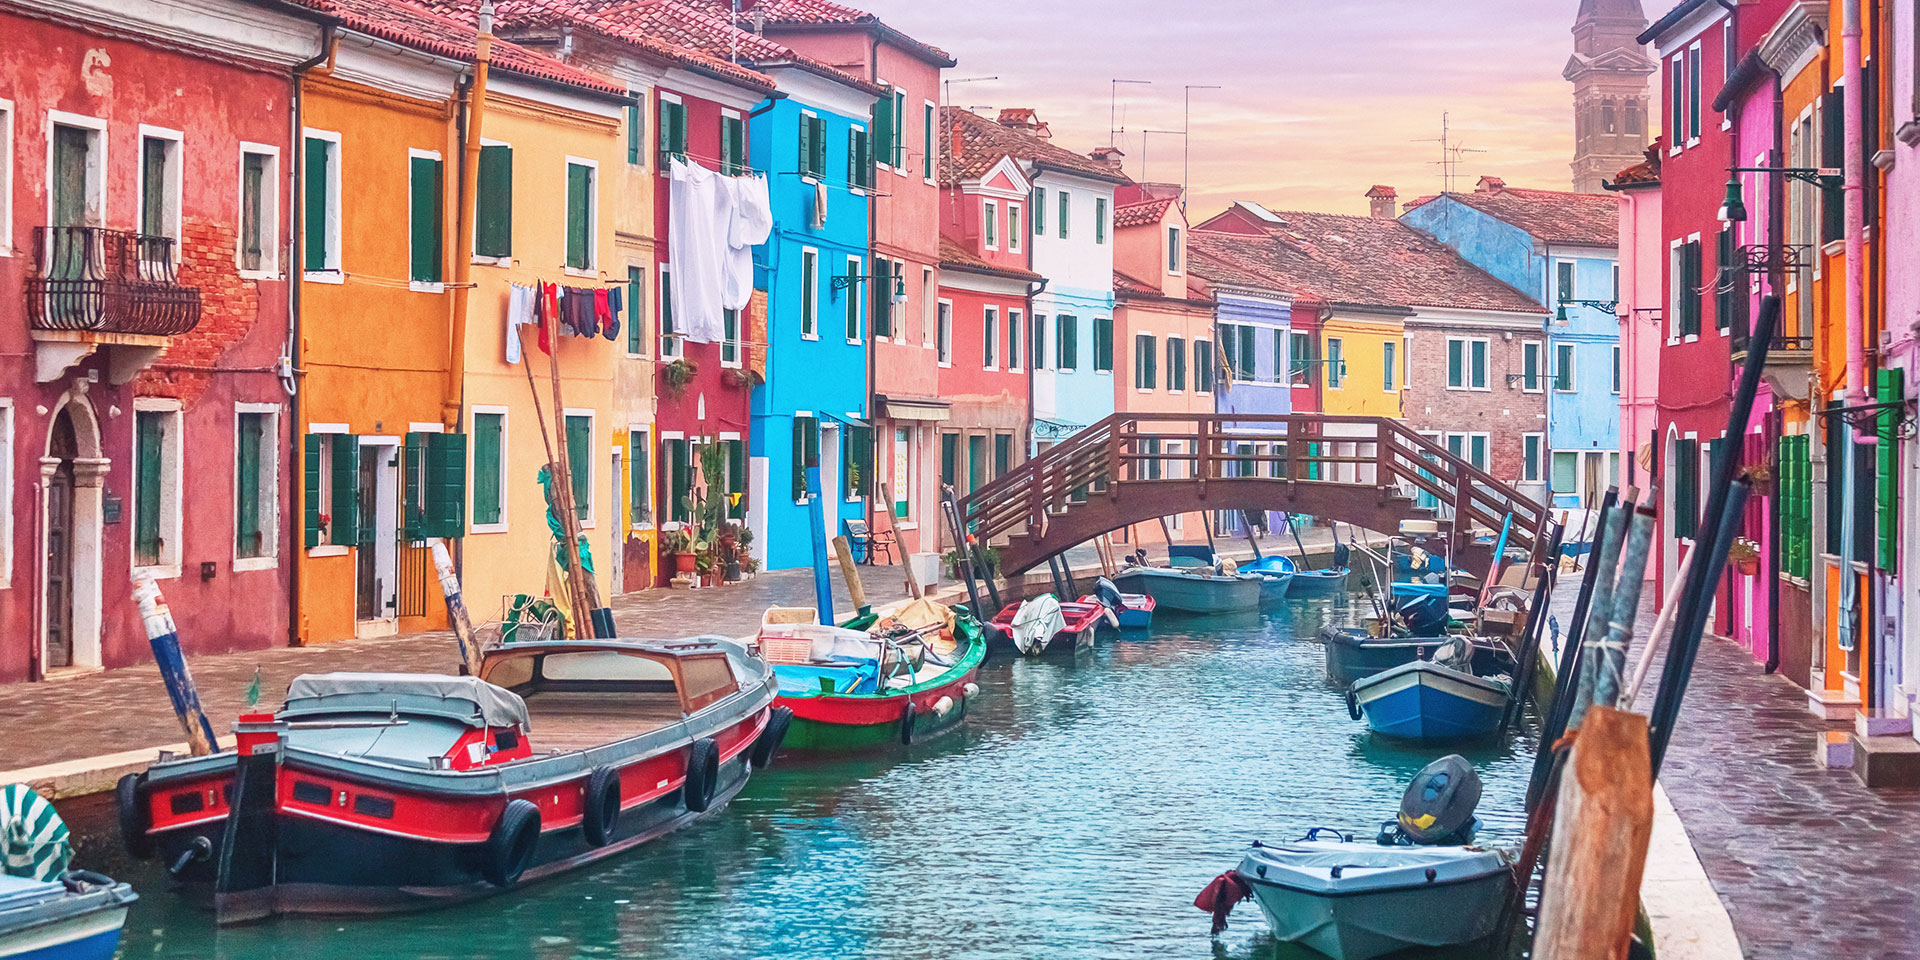 Catch the colors of Burano. (Photo: Getty Images)